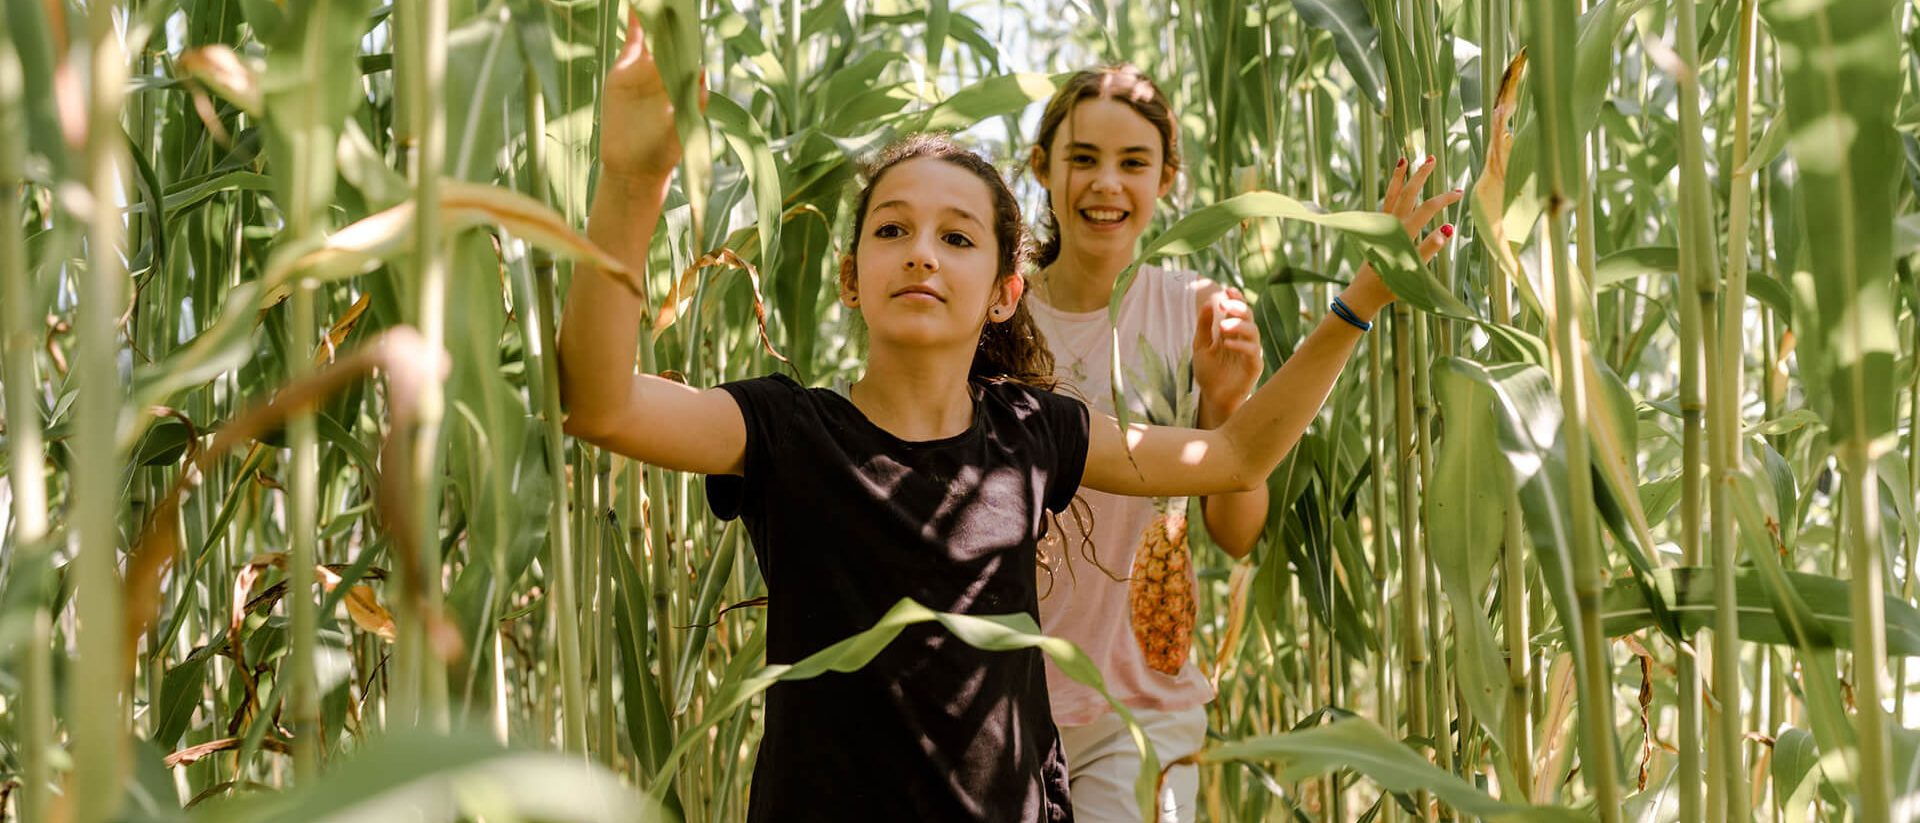 summer campers in a corn field